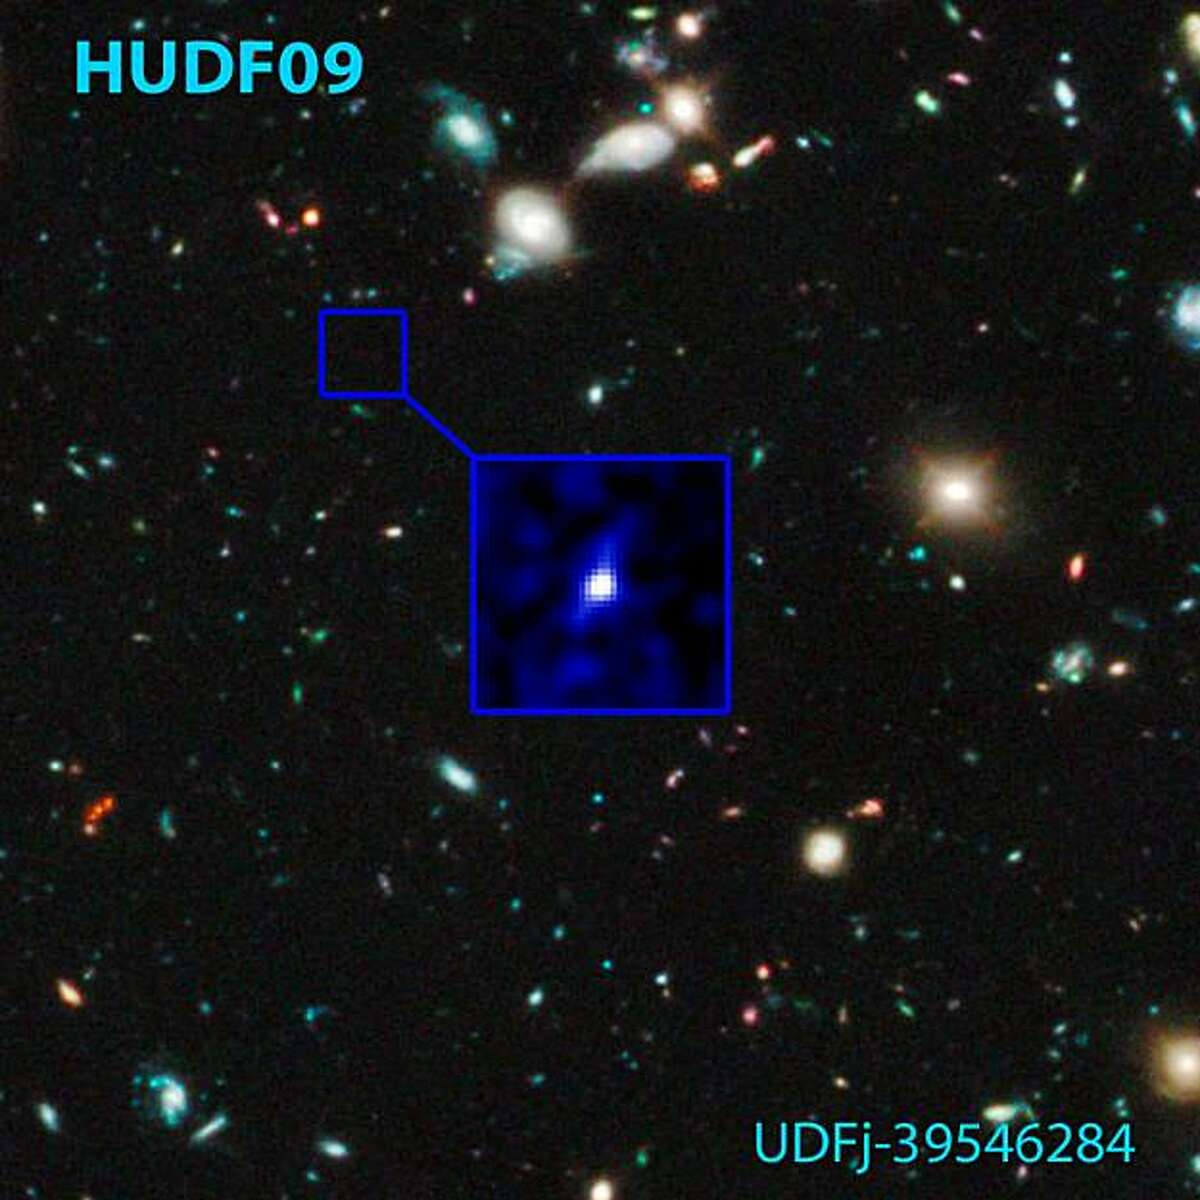 Shown here is an image of the candidate galaxy that existed 480 million years after the Big Bang (the z~10 galaxy) and the position in the Hubble Ultra Deep Field (HUDF) where it was found. This HUDF WFC3/IR field -- called HUDF09 because the WFC3/IR observations began in 2009 -- is the deepest infrared image ever taken of the universe. Astronomers on Wednesday, January 26, 2011 said they had snared an image of what may be the oldest galaxy ever seen, a starry cluster that came into being when the Universe was still a baby.